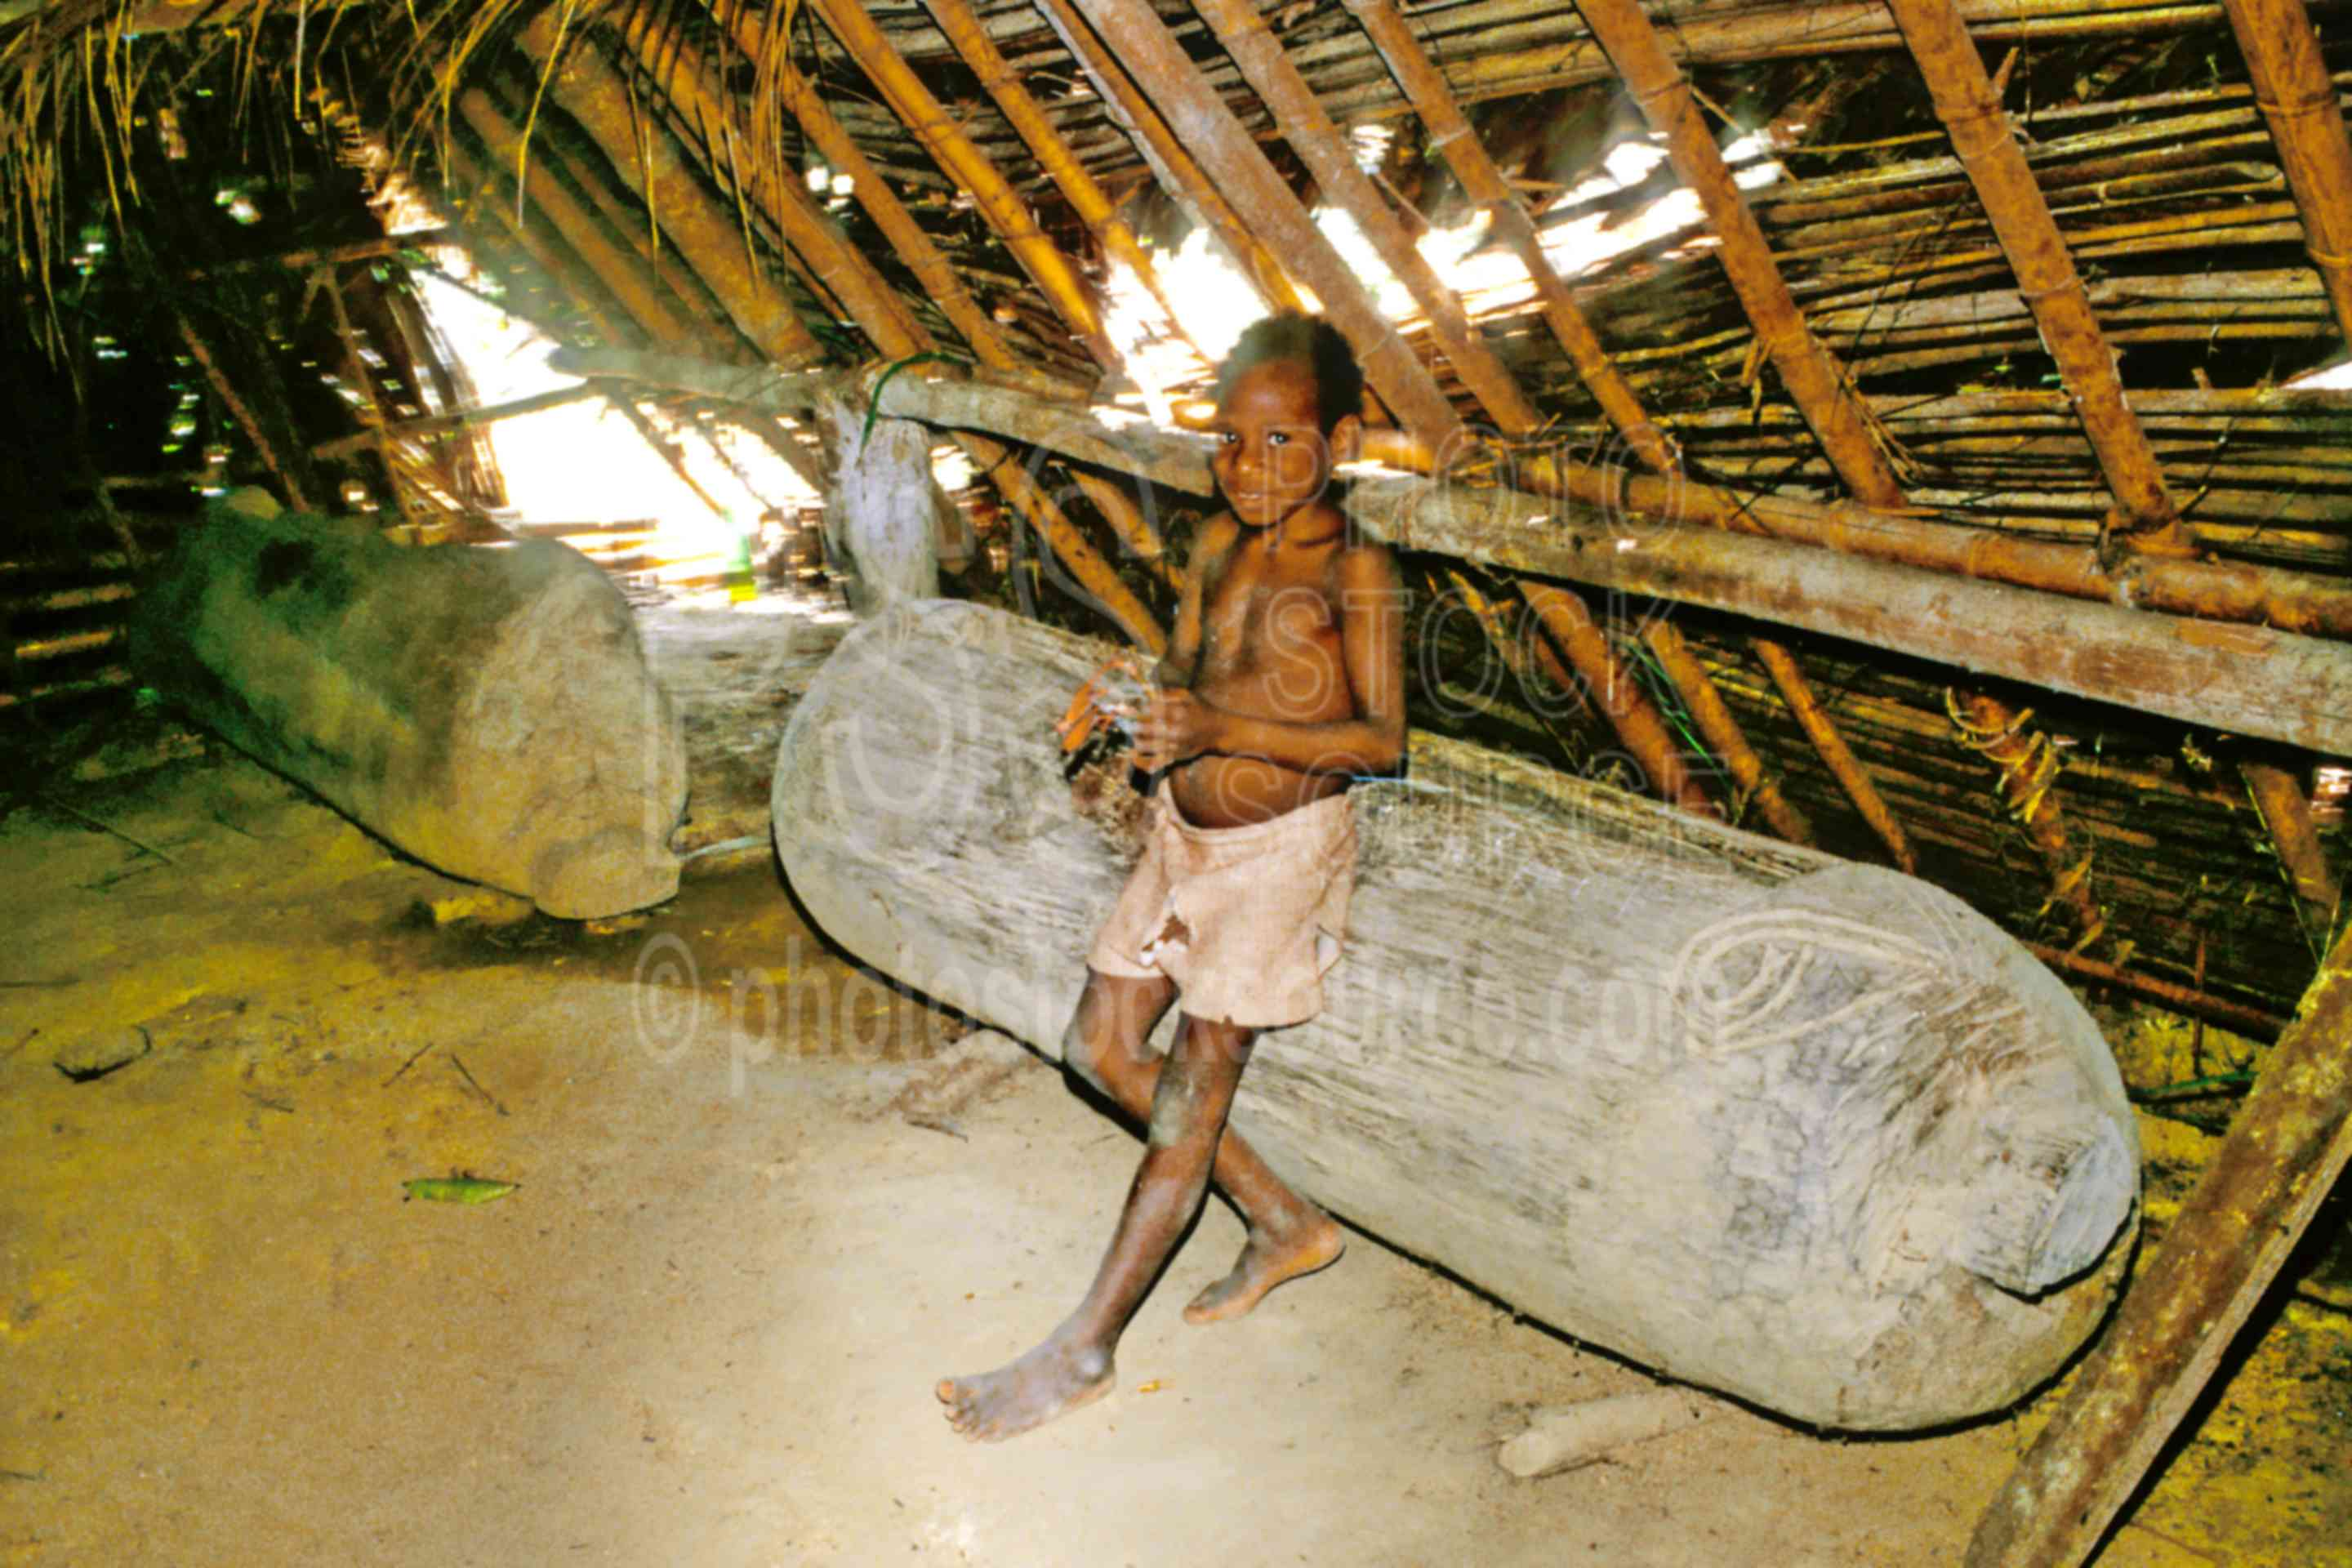 Boy and Garamut slit drum,arts,boys,carving,ceremony,drum,house,huts,ceremonies,children